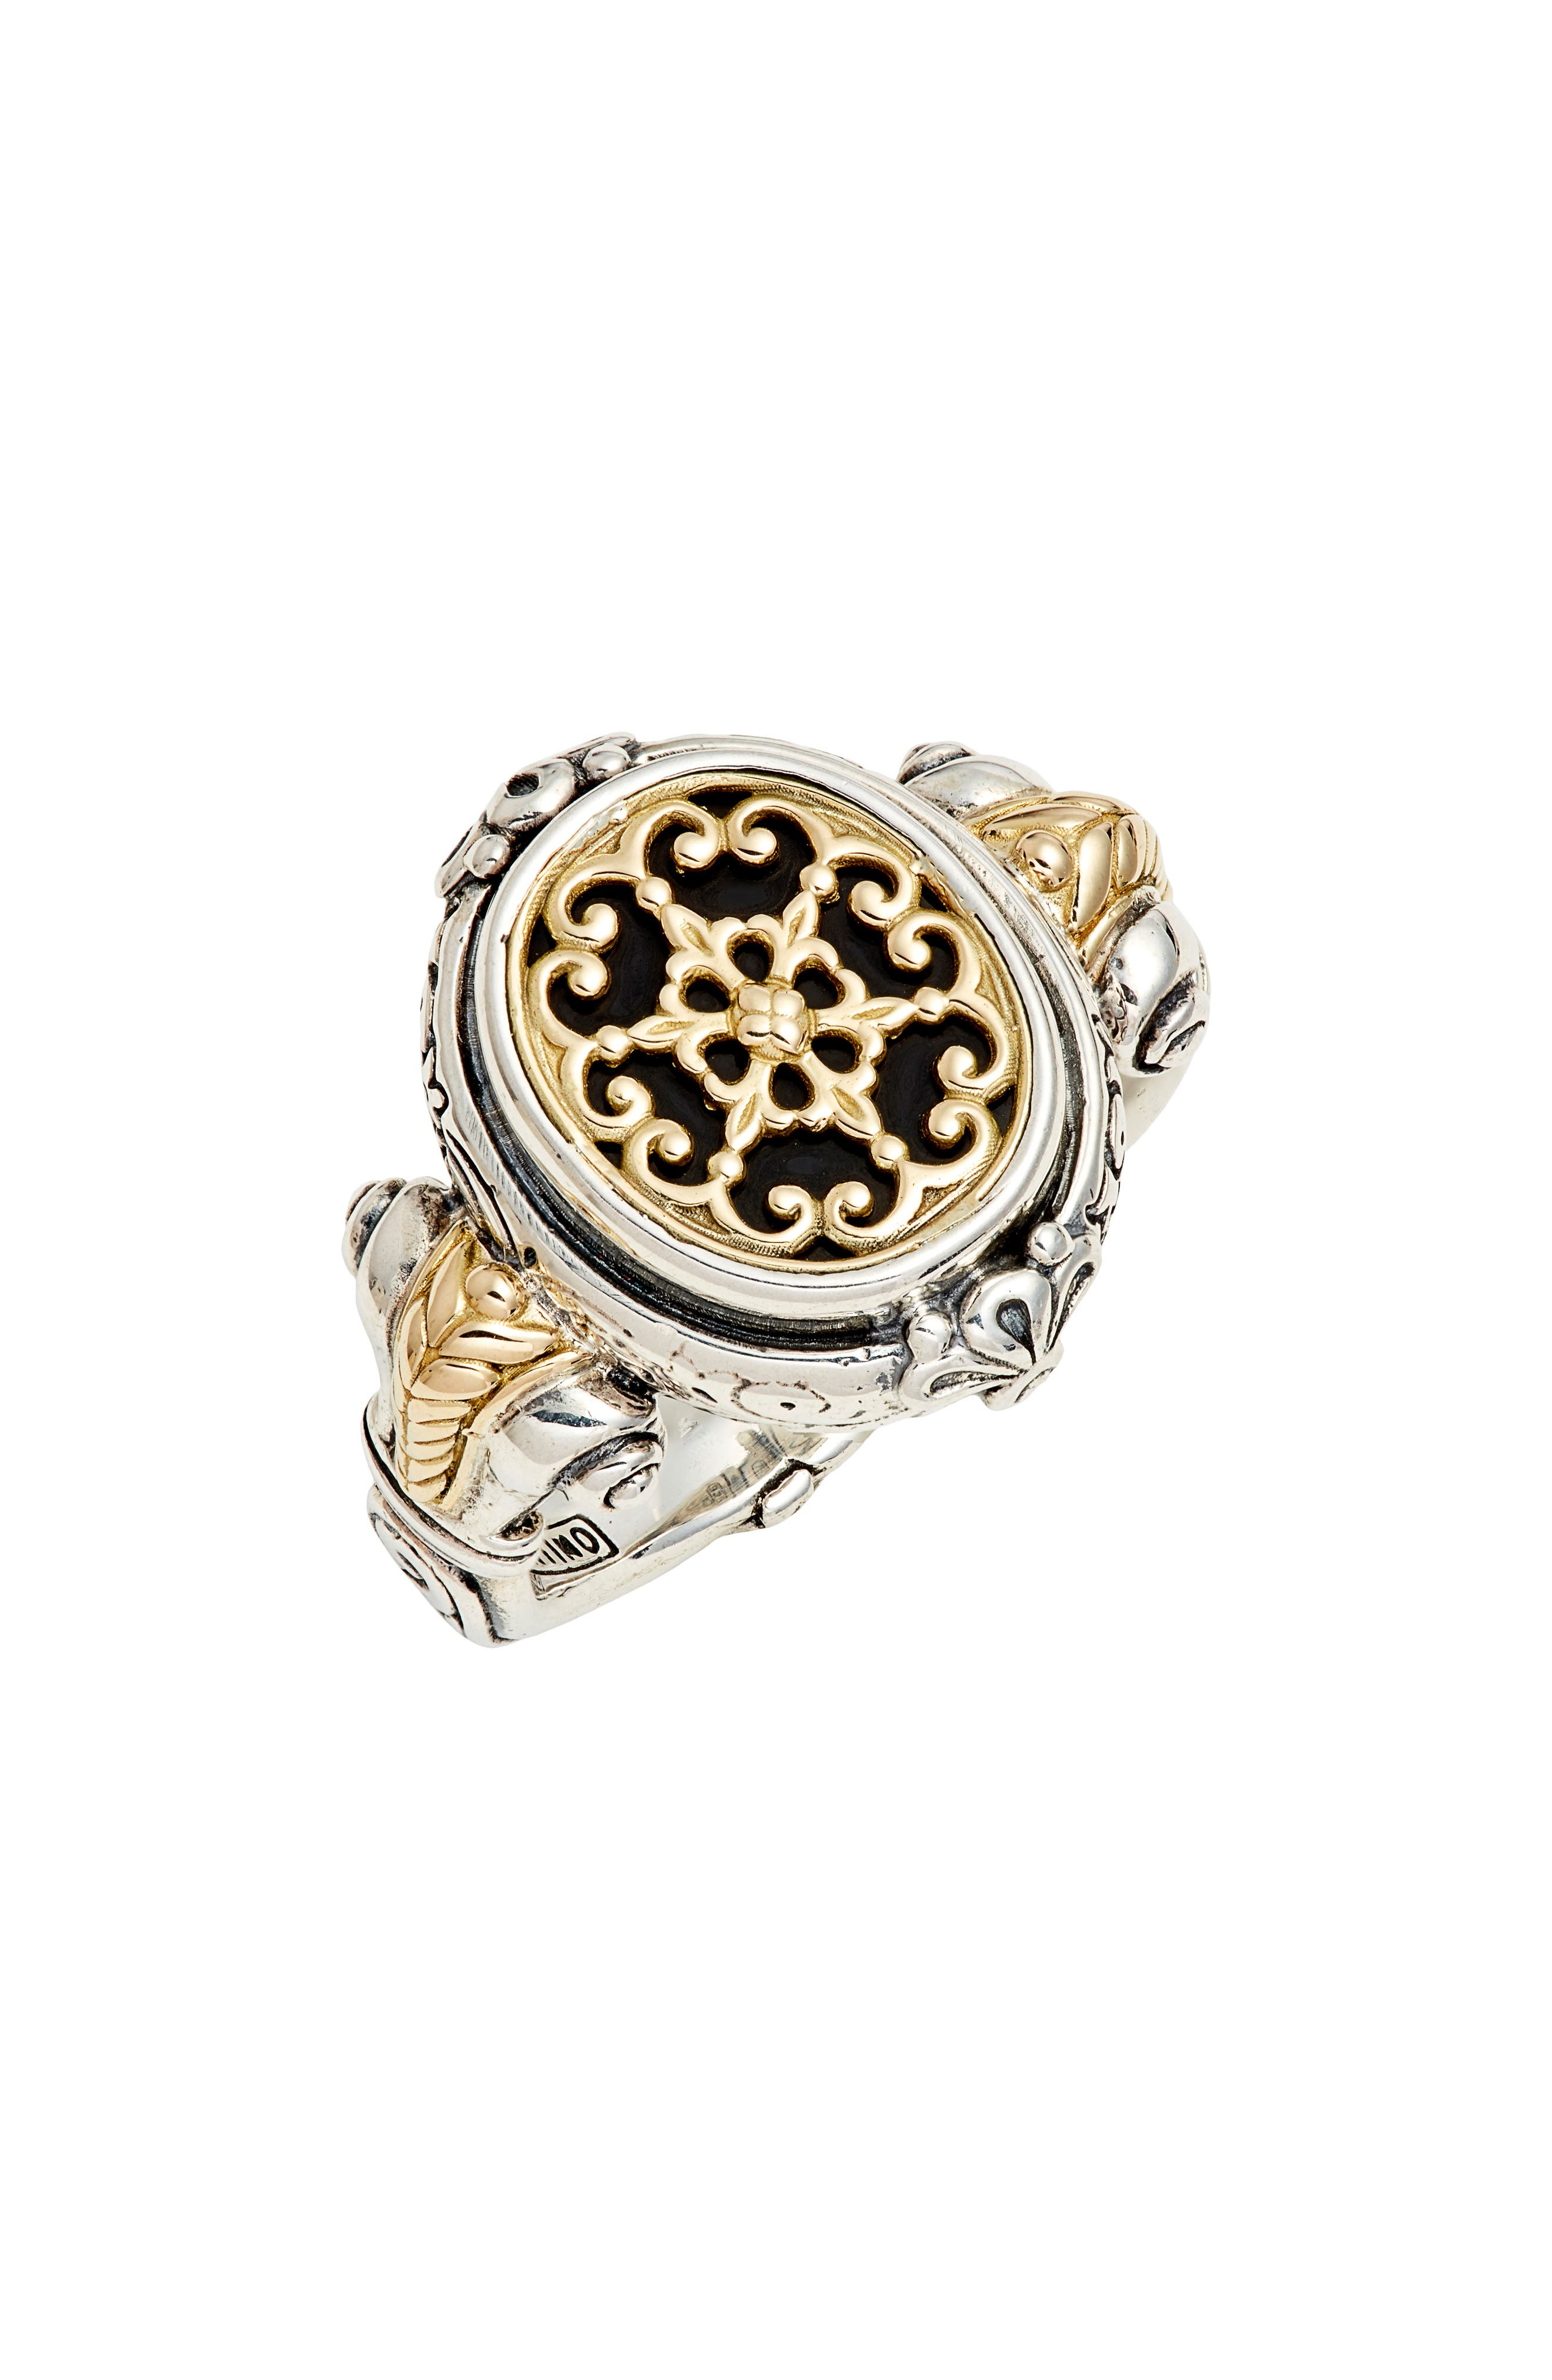 A signet ring inspired by the history of ancient Greece features an ornate design handcrafted from 18-karat gold filigree, onyx and sterling silver. Style Name: Konstantino Calypso Signet Ring. Style Number: 5850518. Available in stores.